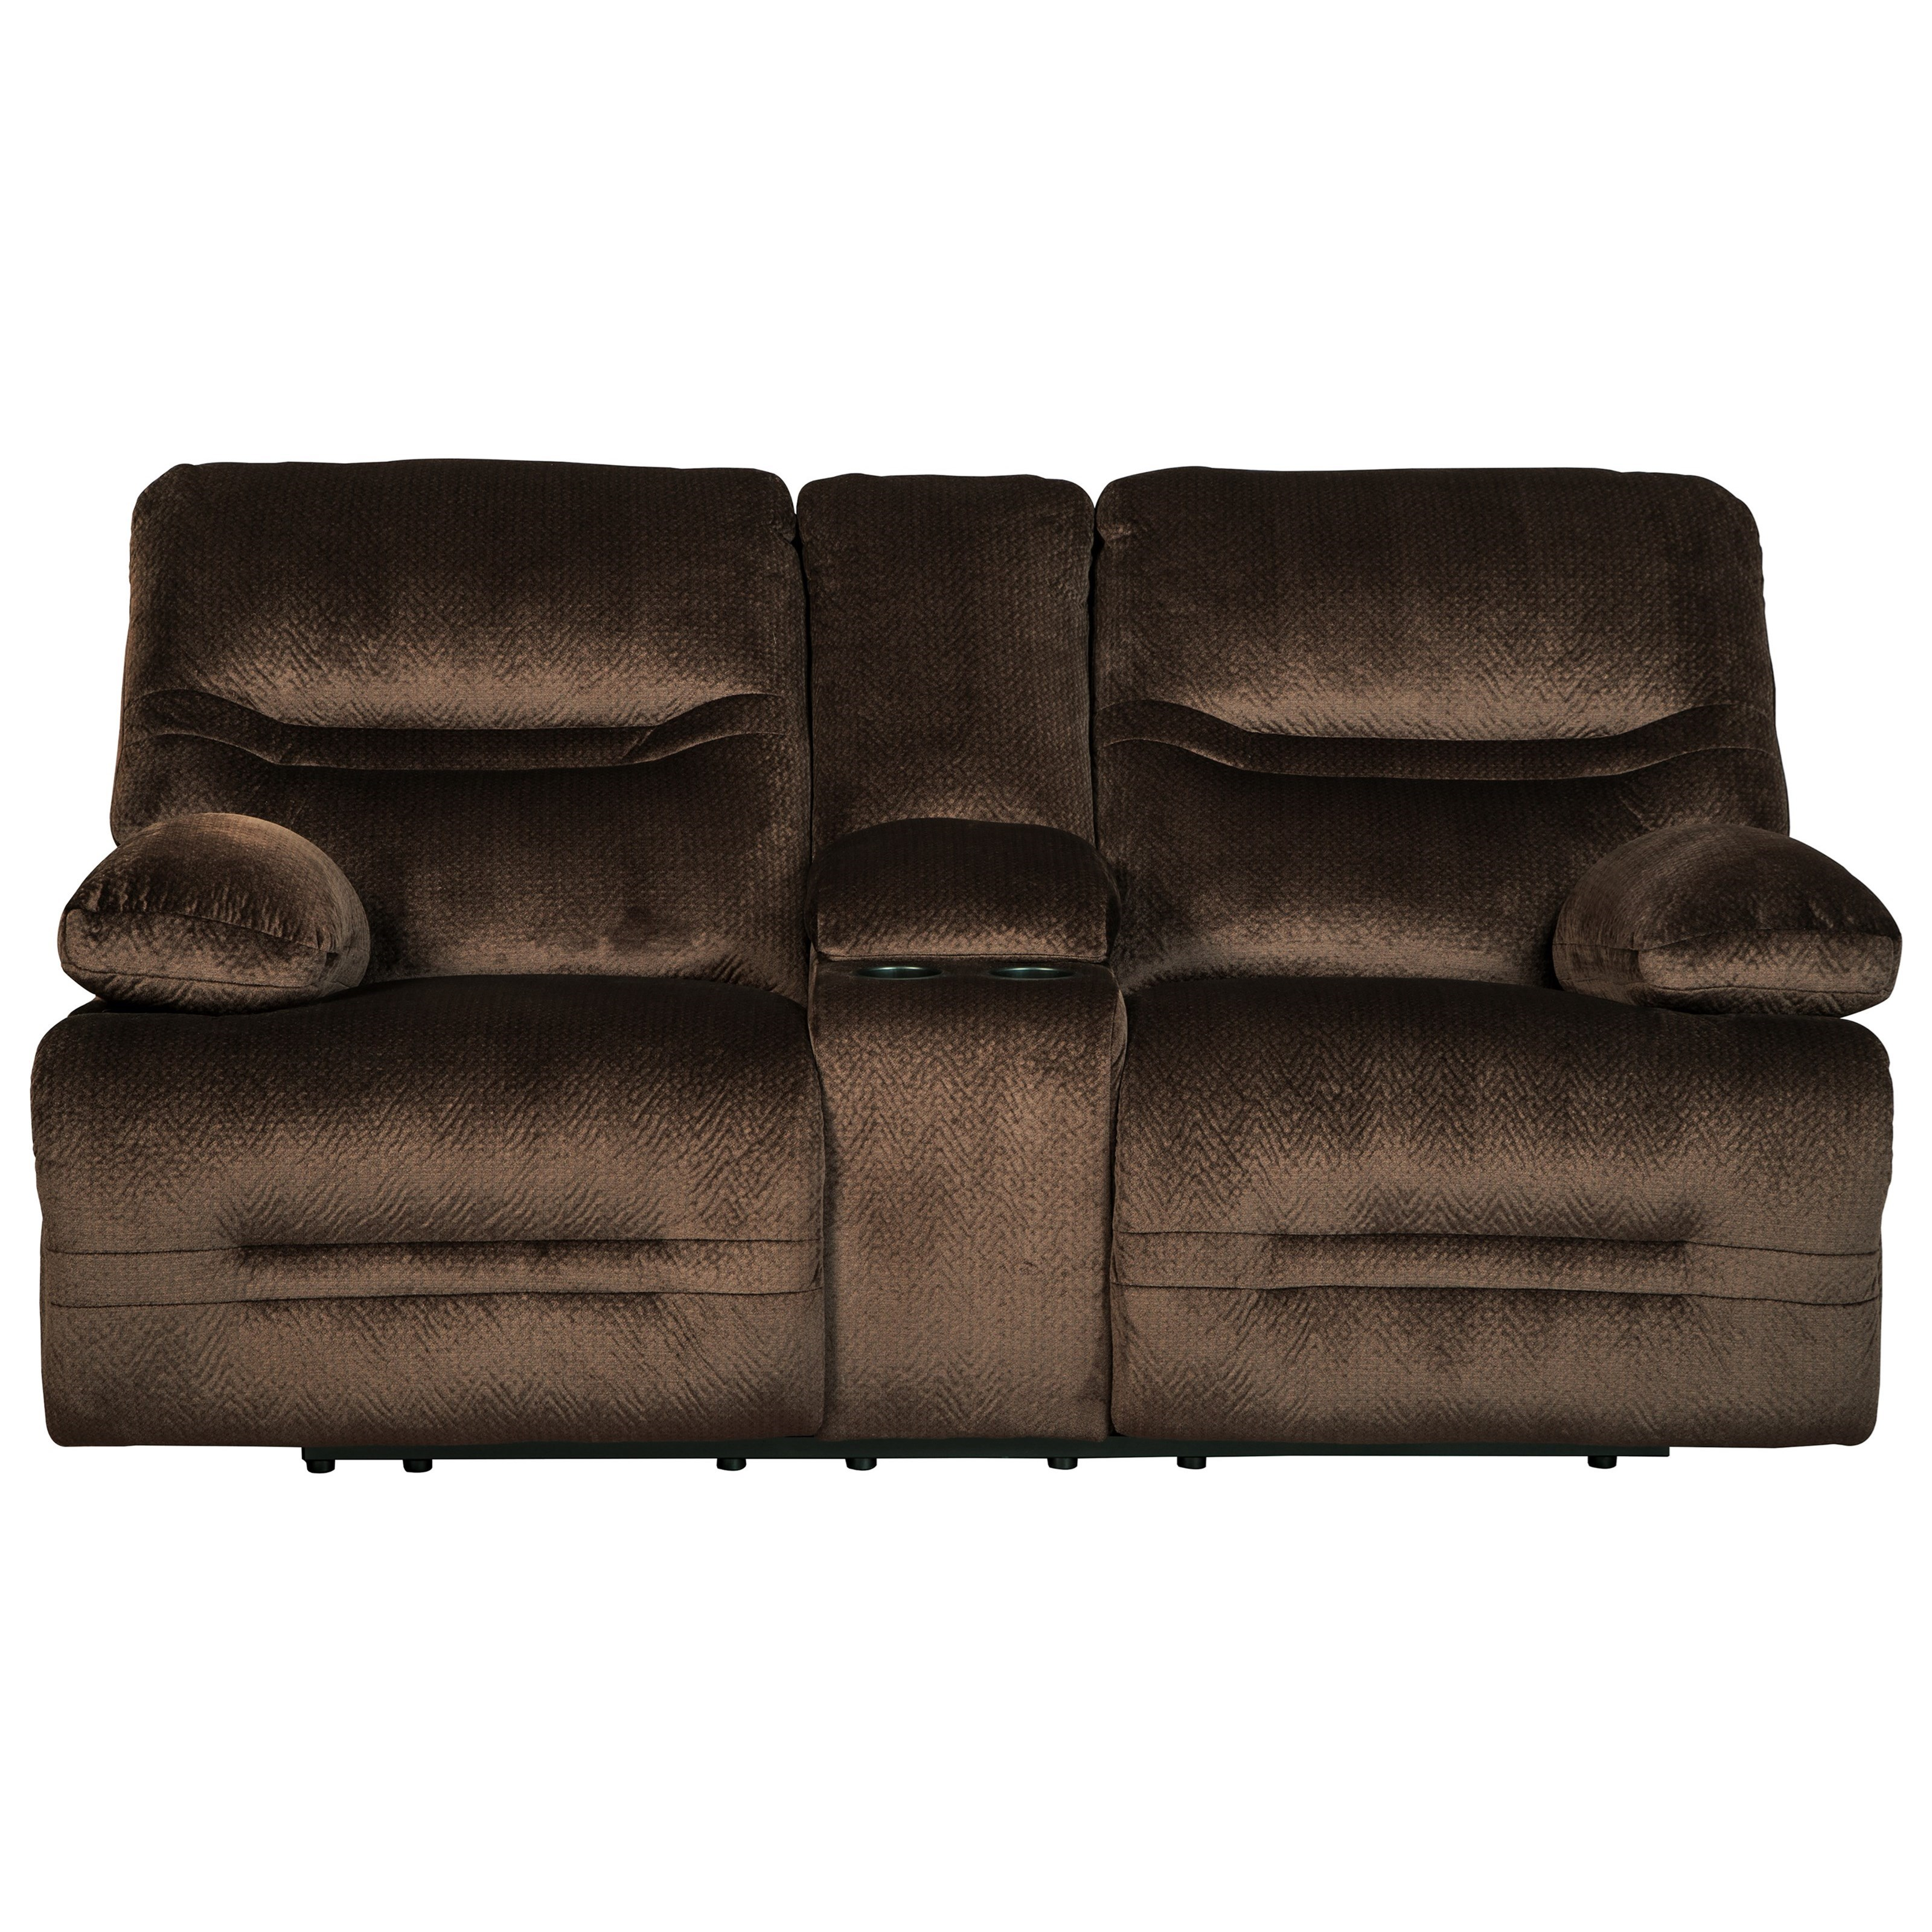 Signature Design by Ashley Brayburn Double Reclining Power Loveseat w/ Console - Item Number: 7770196